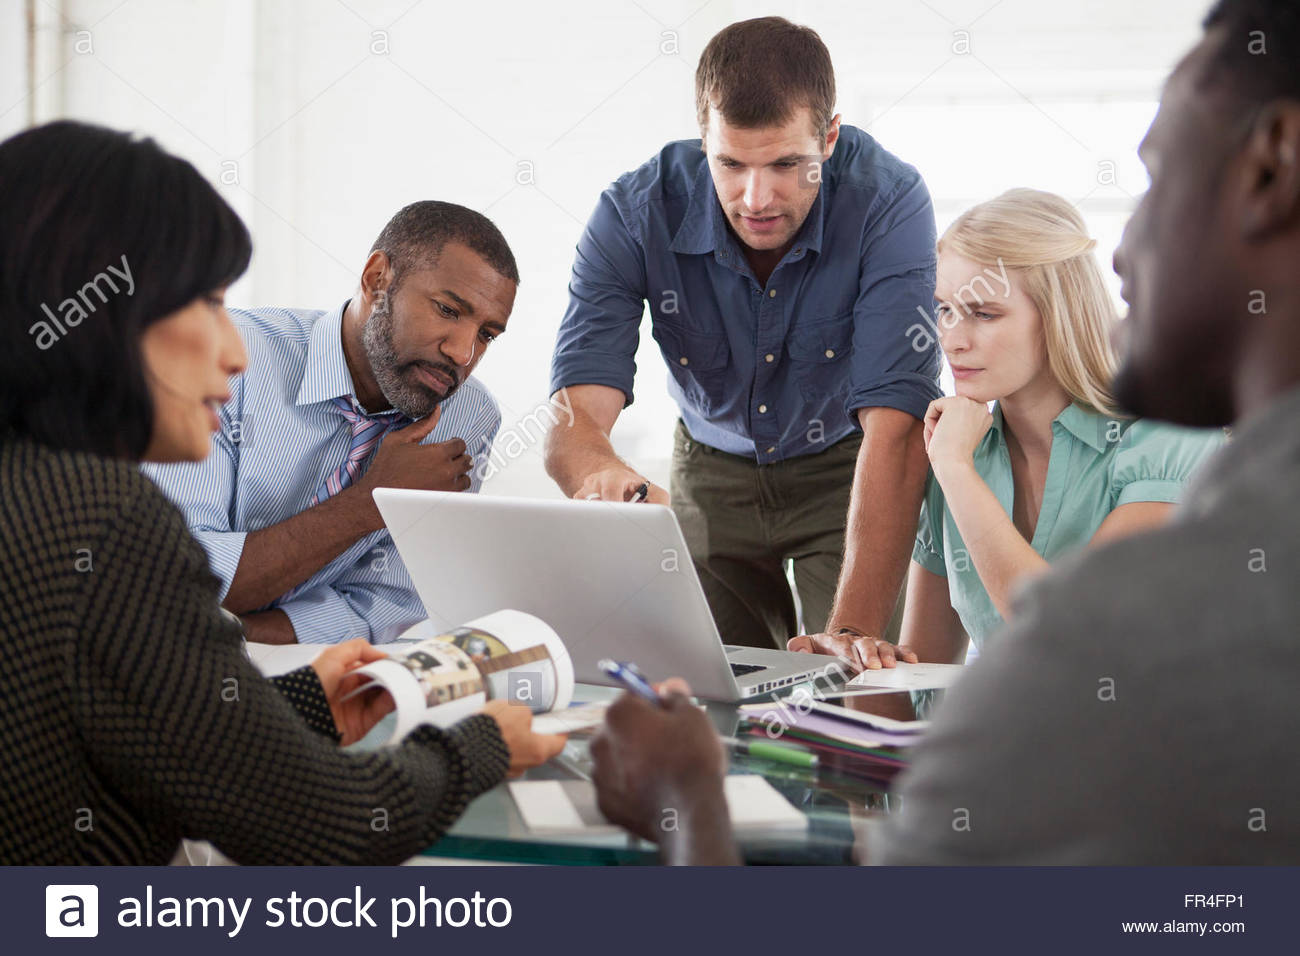 small group looking very concerned in business meeting - Stock Image